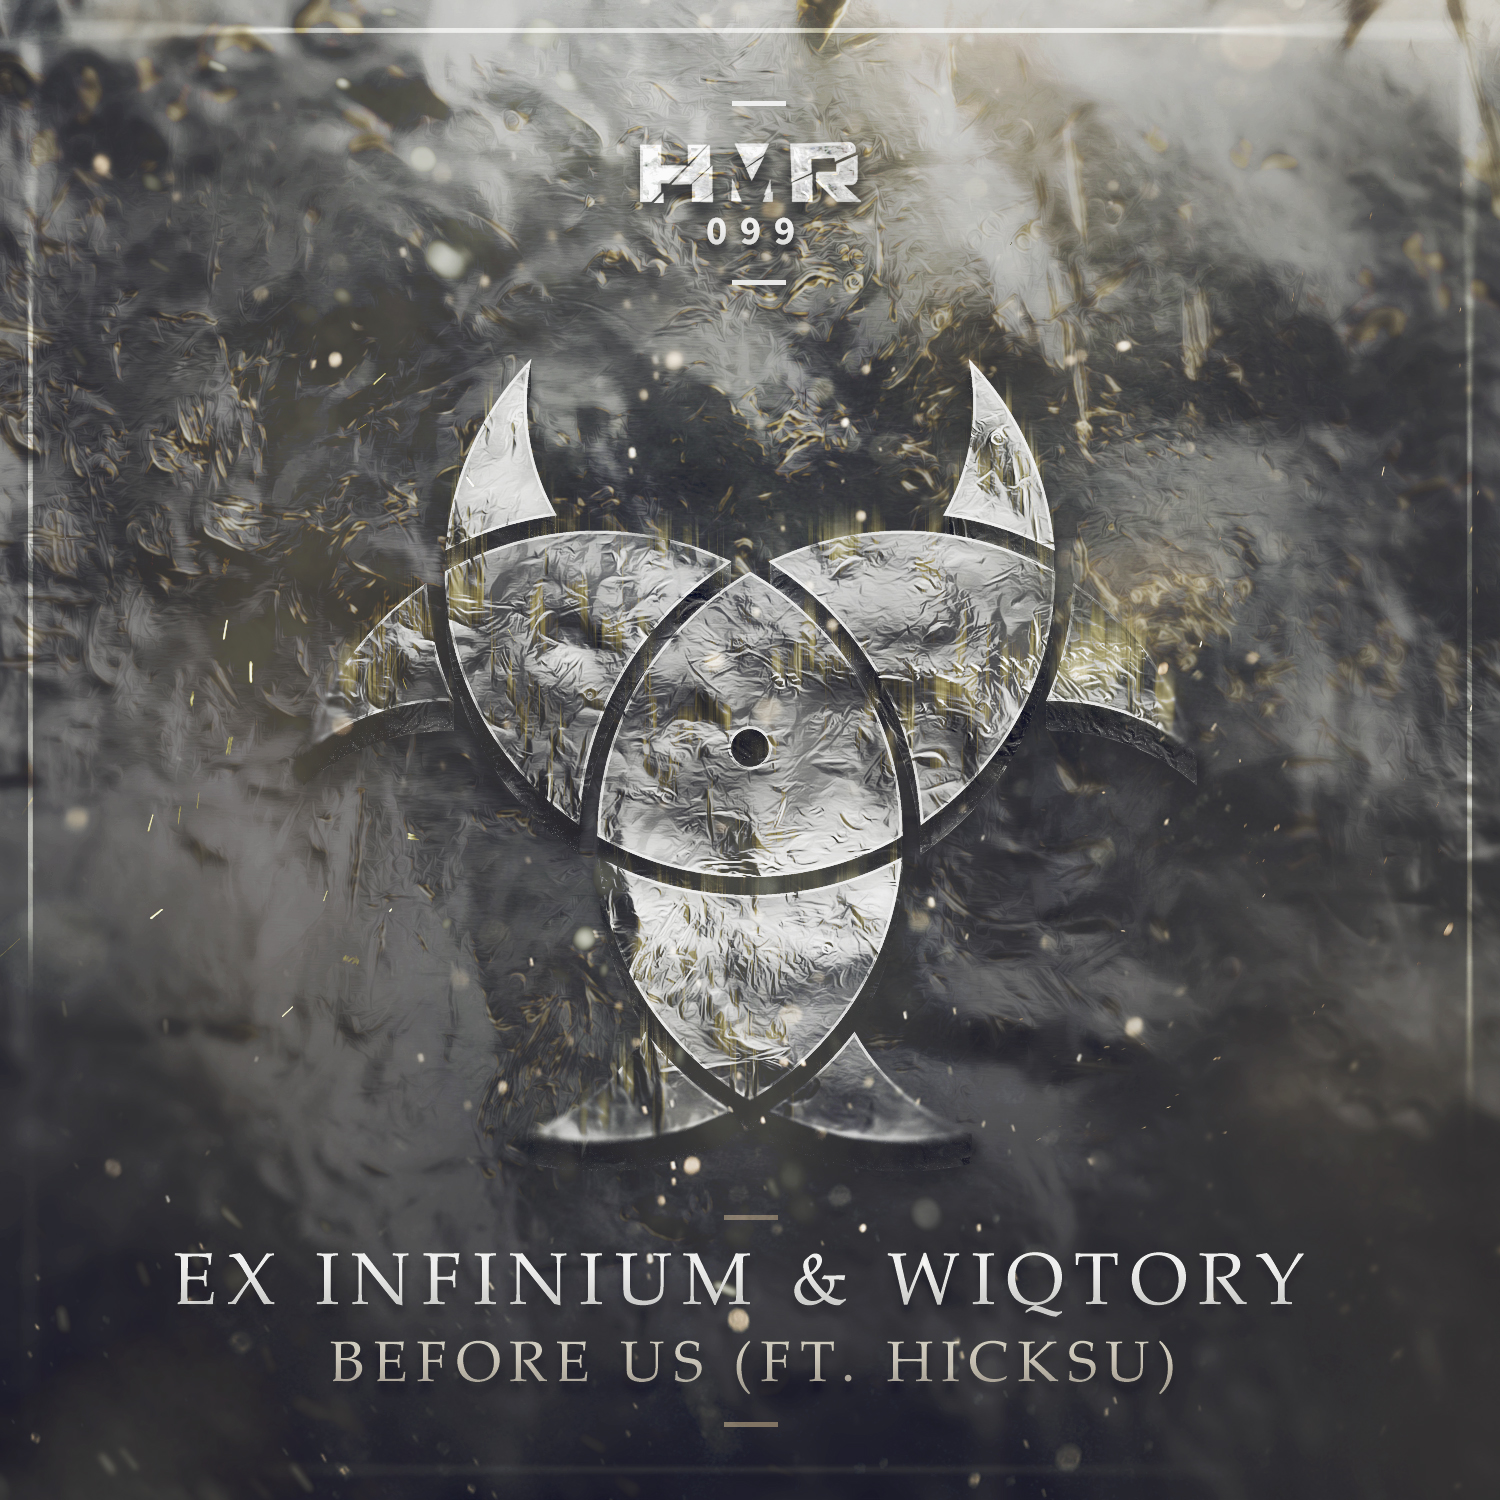 Before Us by Ex Infinium & Wiqtory ft. Hicksu